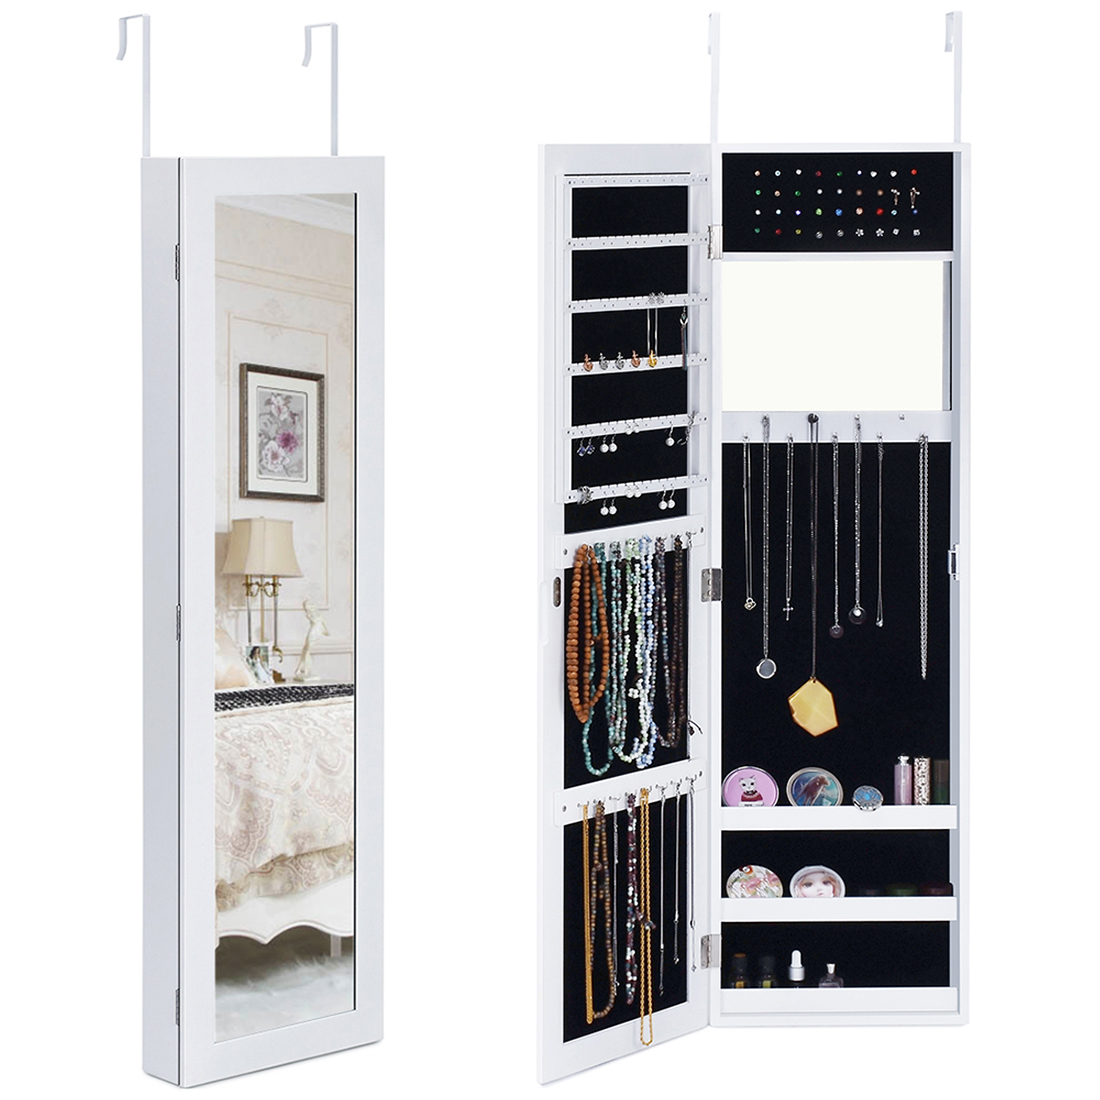 Kingbird Mirror Jewelry Cabinet Armoire Wall Door Mounted Lockable Jewelry Organizer, Space Saving, for Long Necklaces, Rings and Makeup (White)